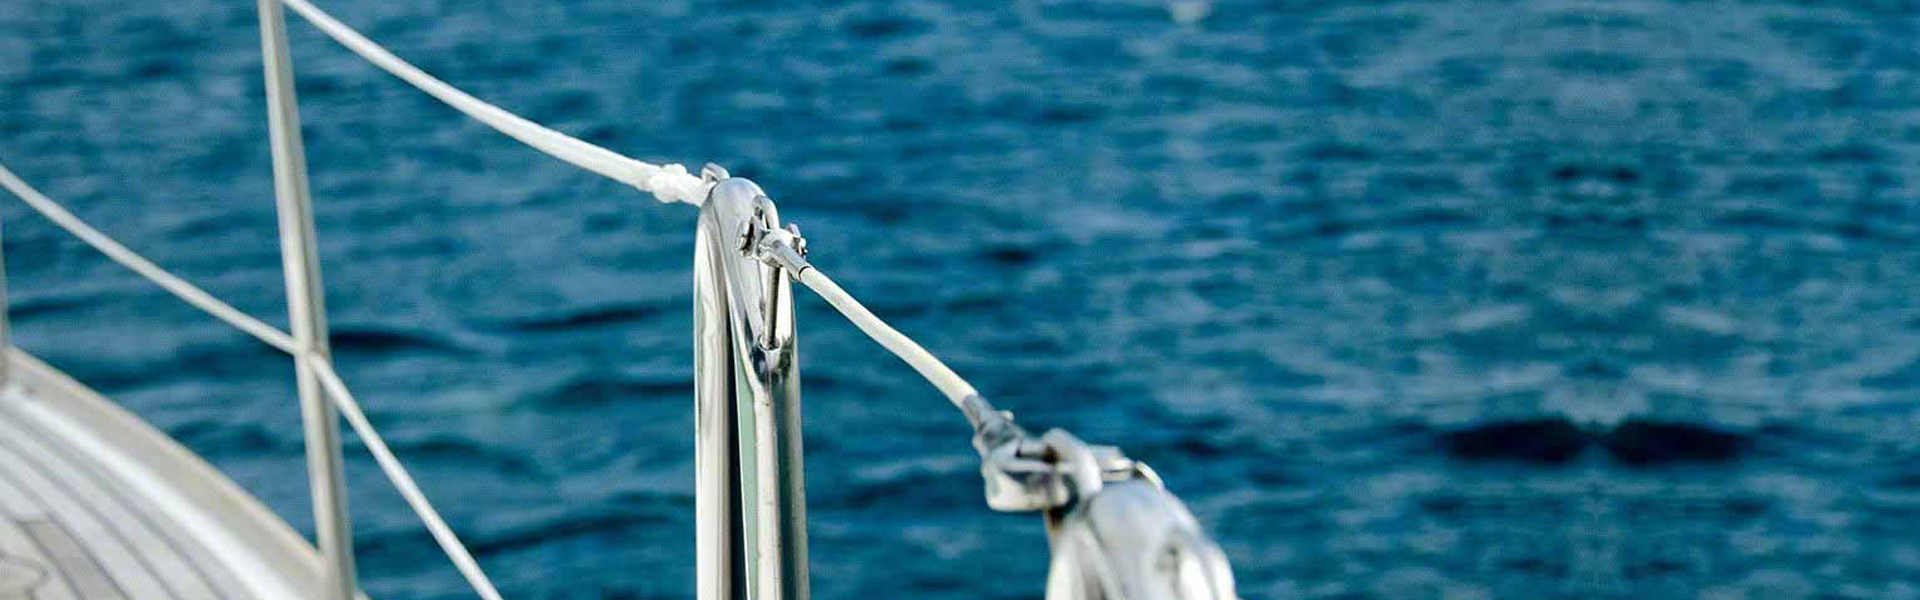 How to Measure Sailboat Lifelines